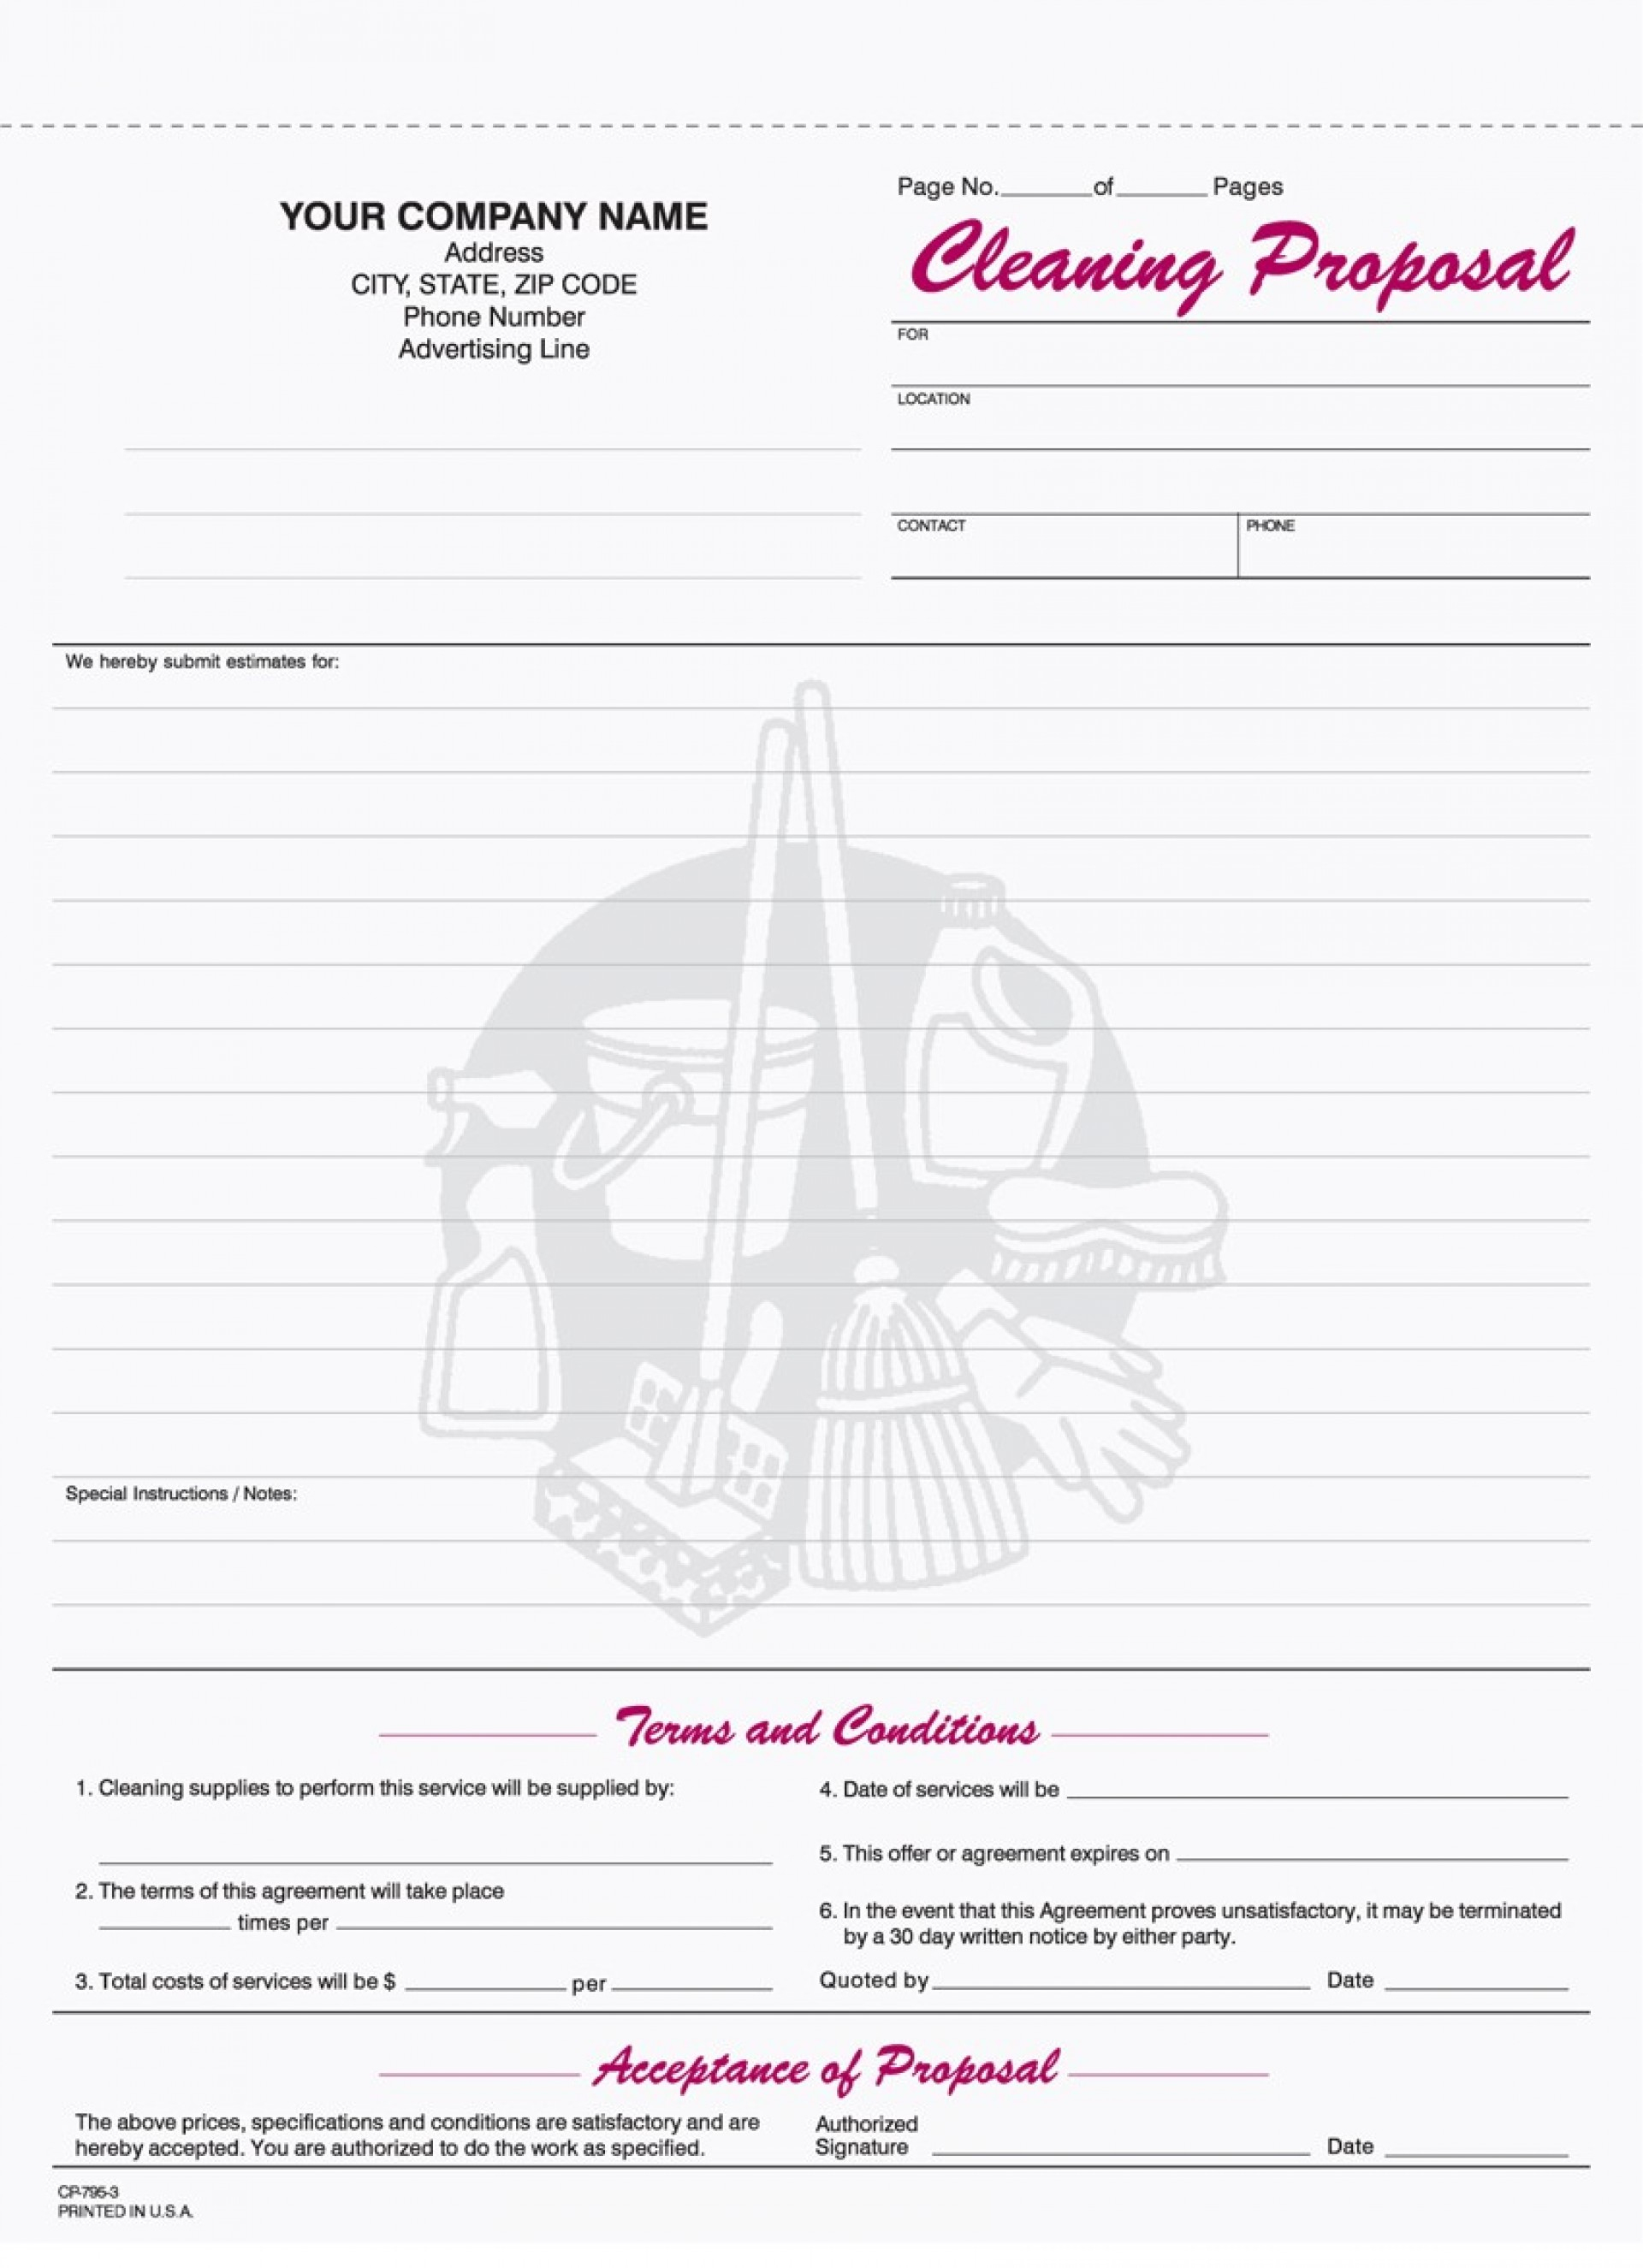 013 Bid Template Free Best Photos Of Printable Proposal Nurulamal - Free Printable Proposal Forms